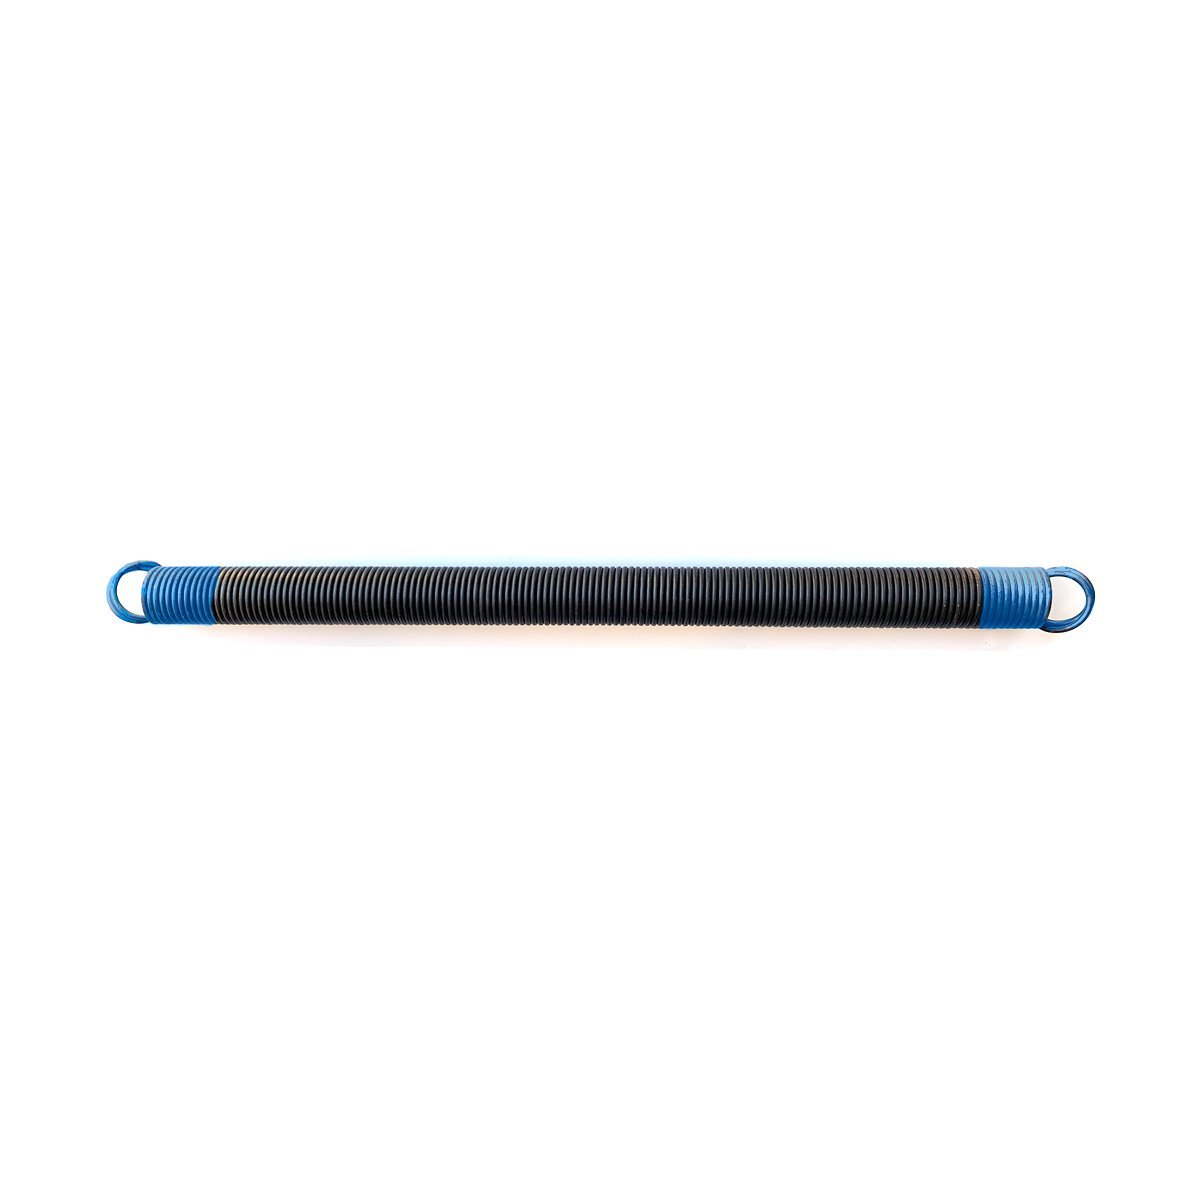 Garage Door Extension Springs - 8 ft Blue